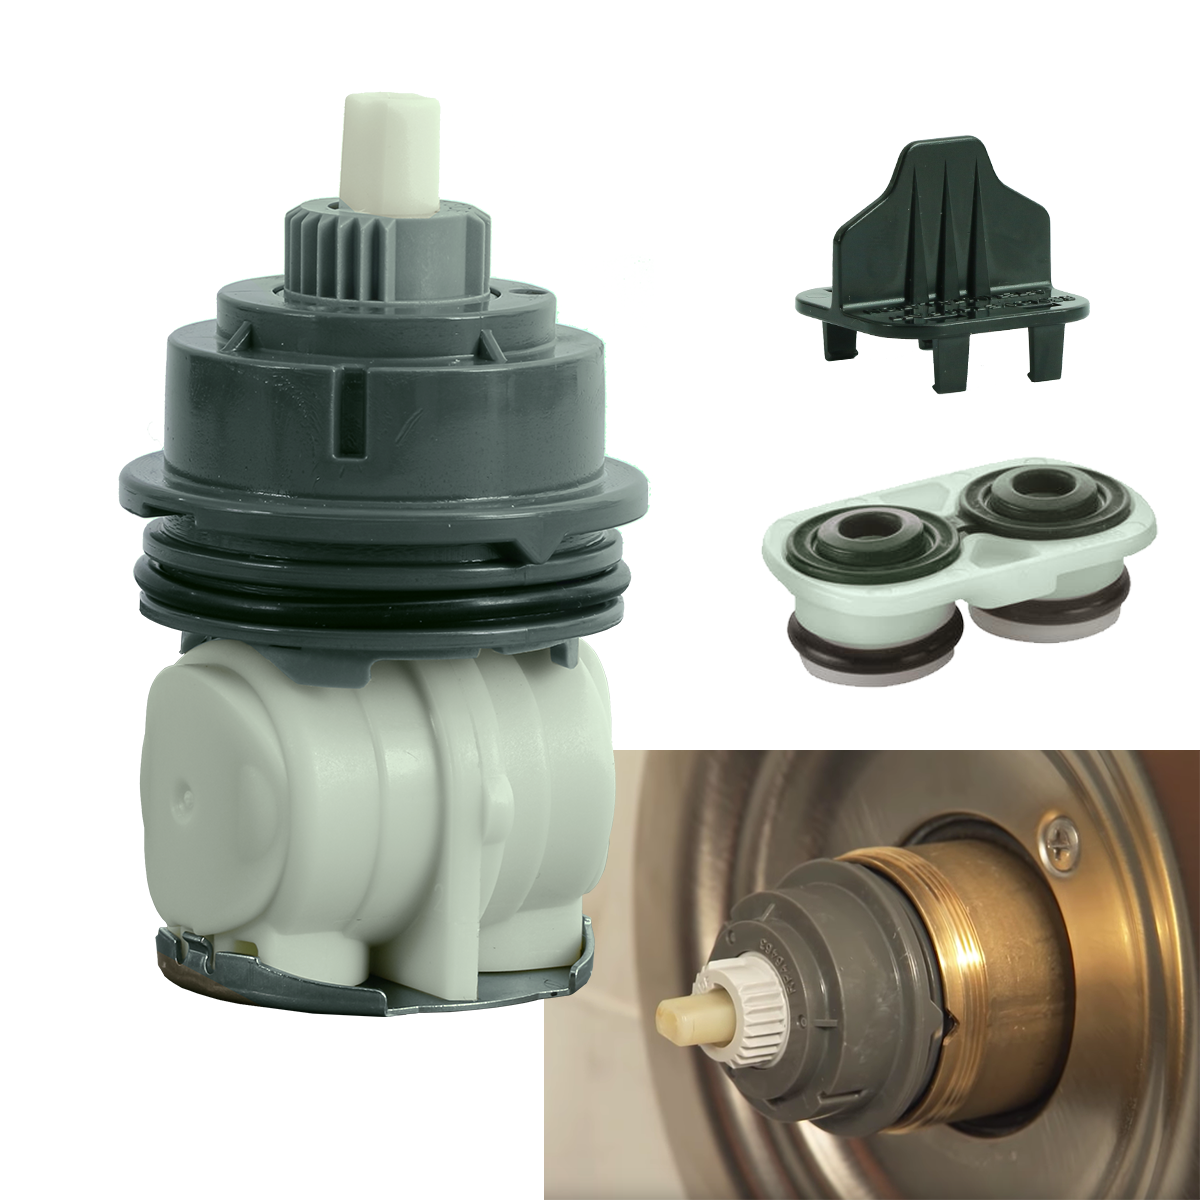 FlowRite Replacement Cartridge for Delta Monitor Shower RP46463 1700 Series Home & Garden